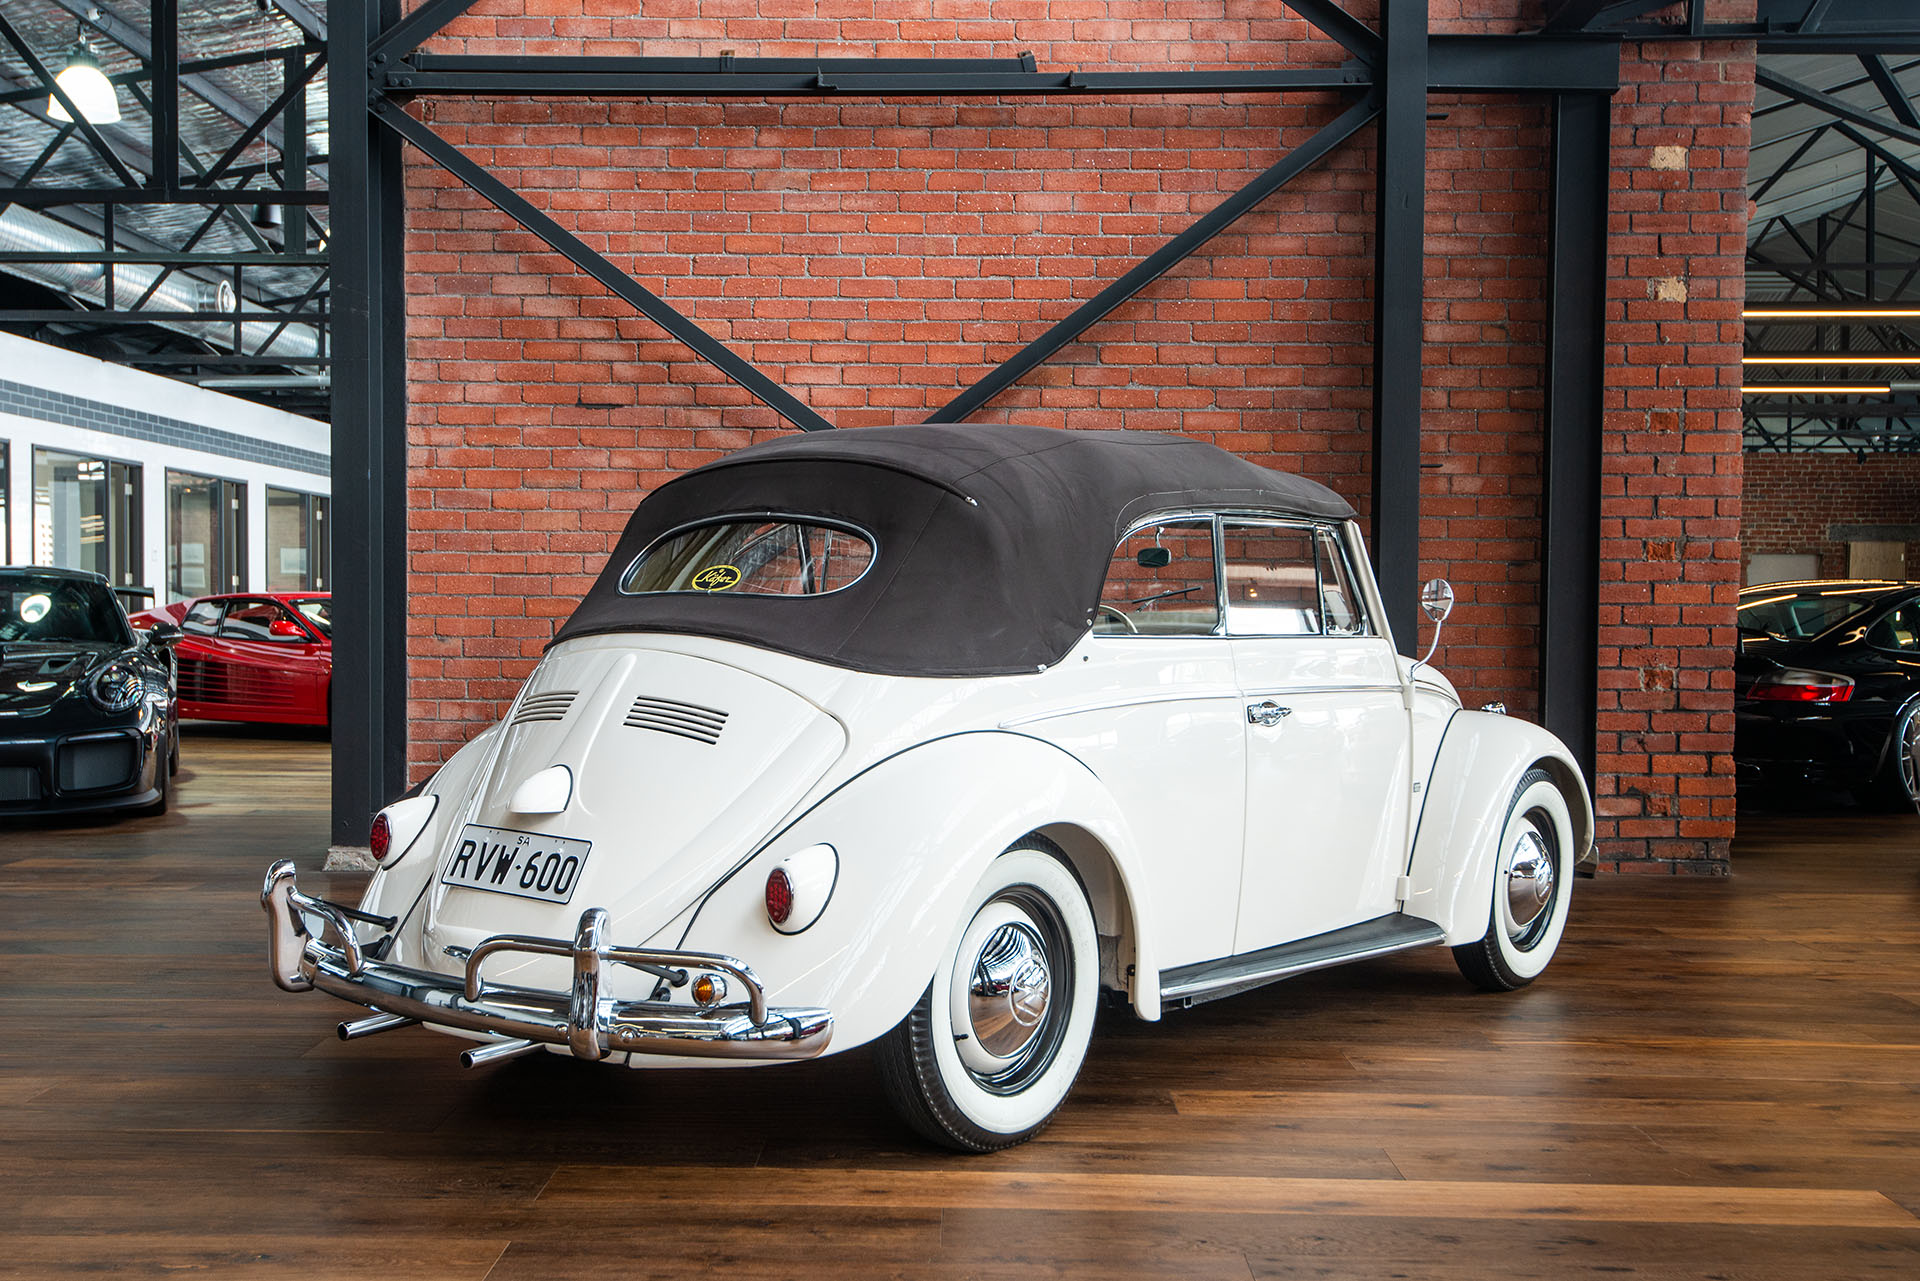 Beetle For Sale >> 1960 Volkswagen Cabriolet - Richmonds - Classic and ...